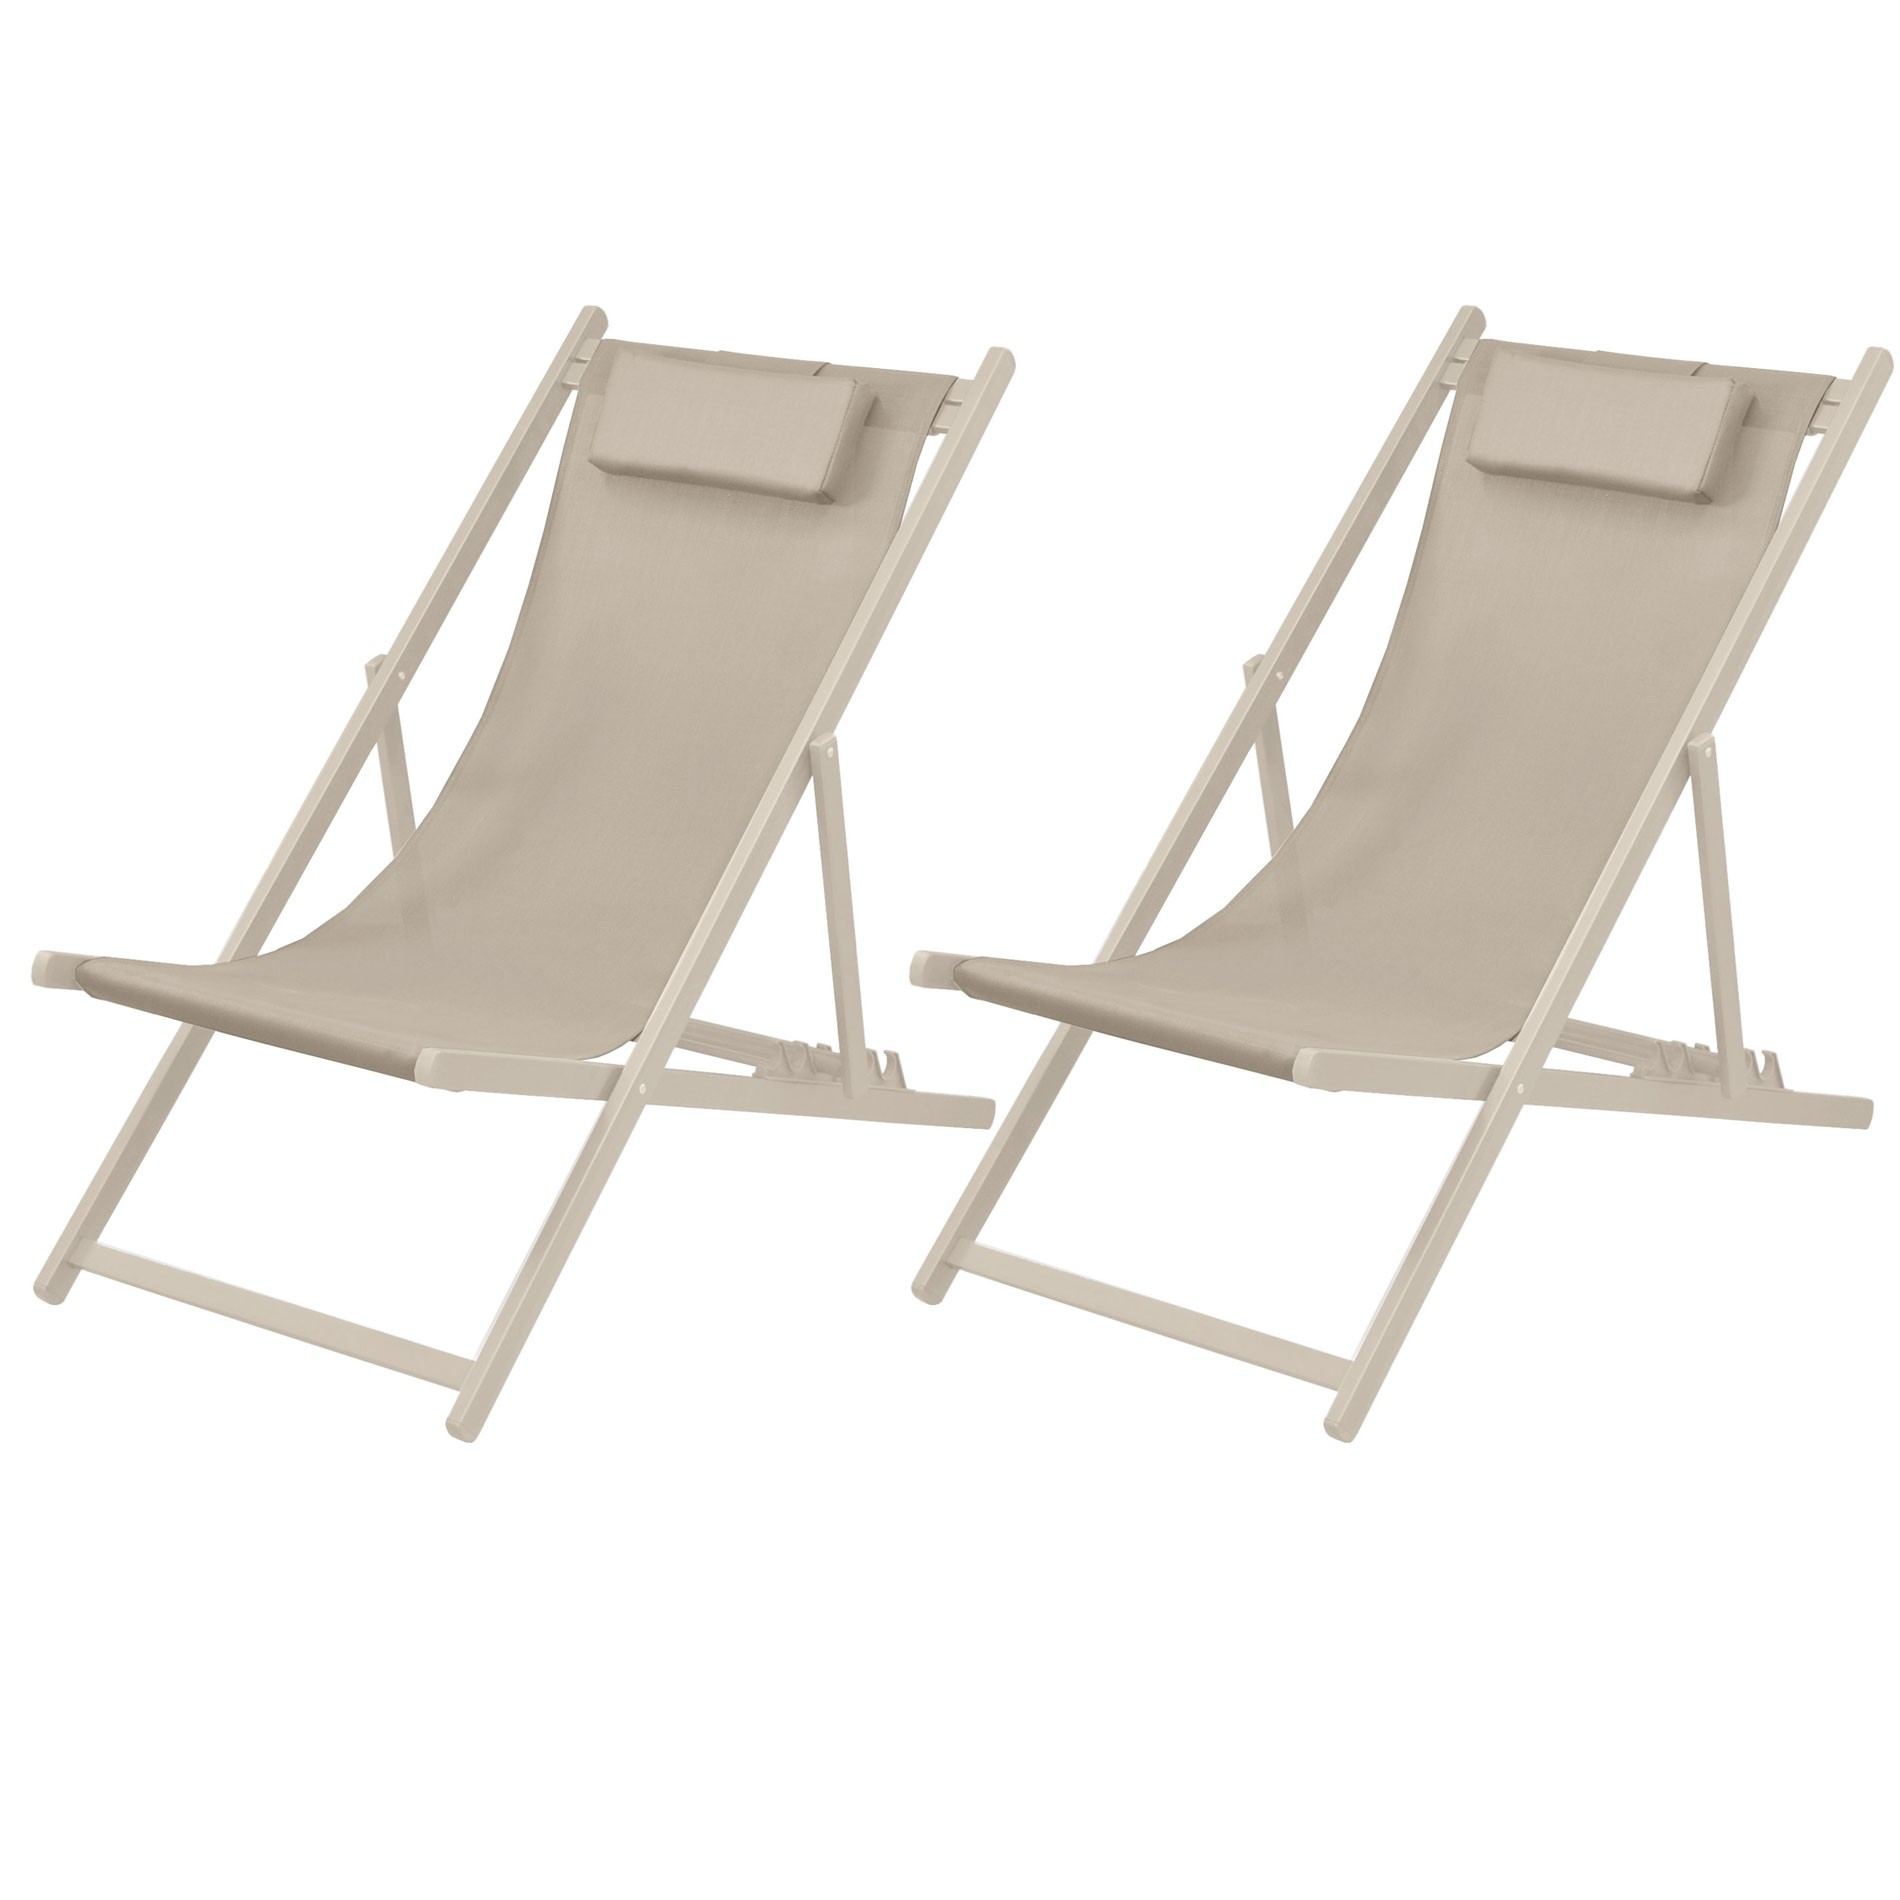 Destockage Chaise De Jardin Chaise Longue Calvi Taupe Lot De 2 Commandez Nos